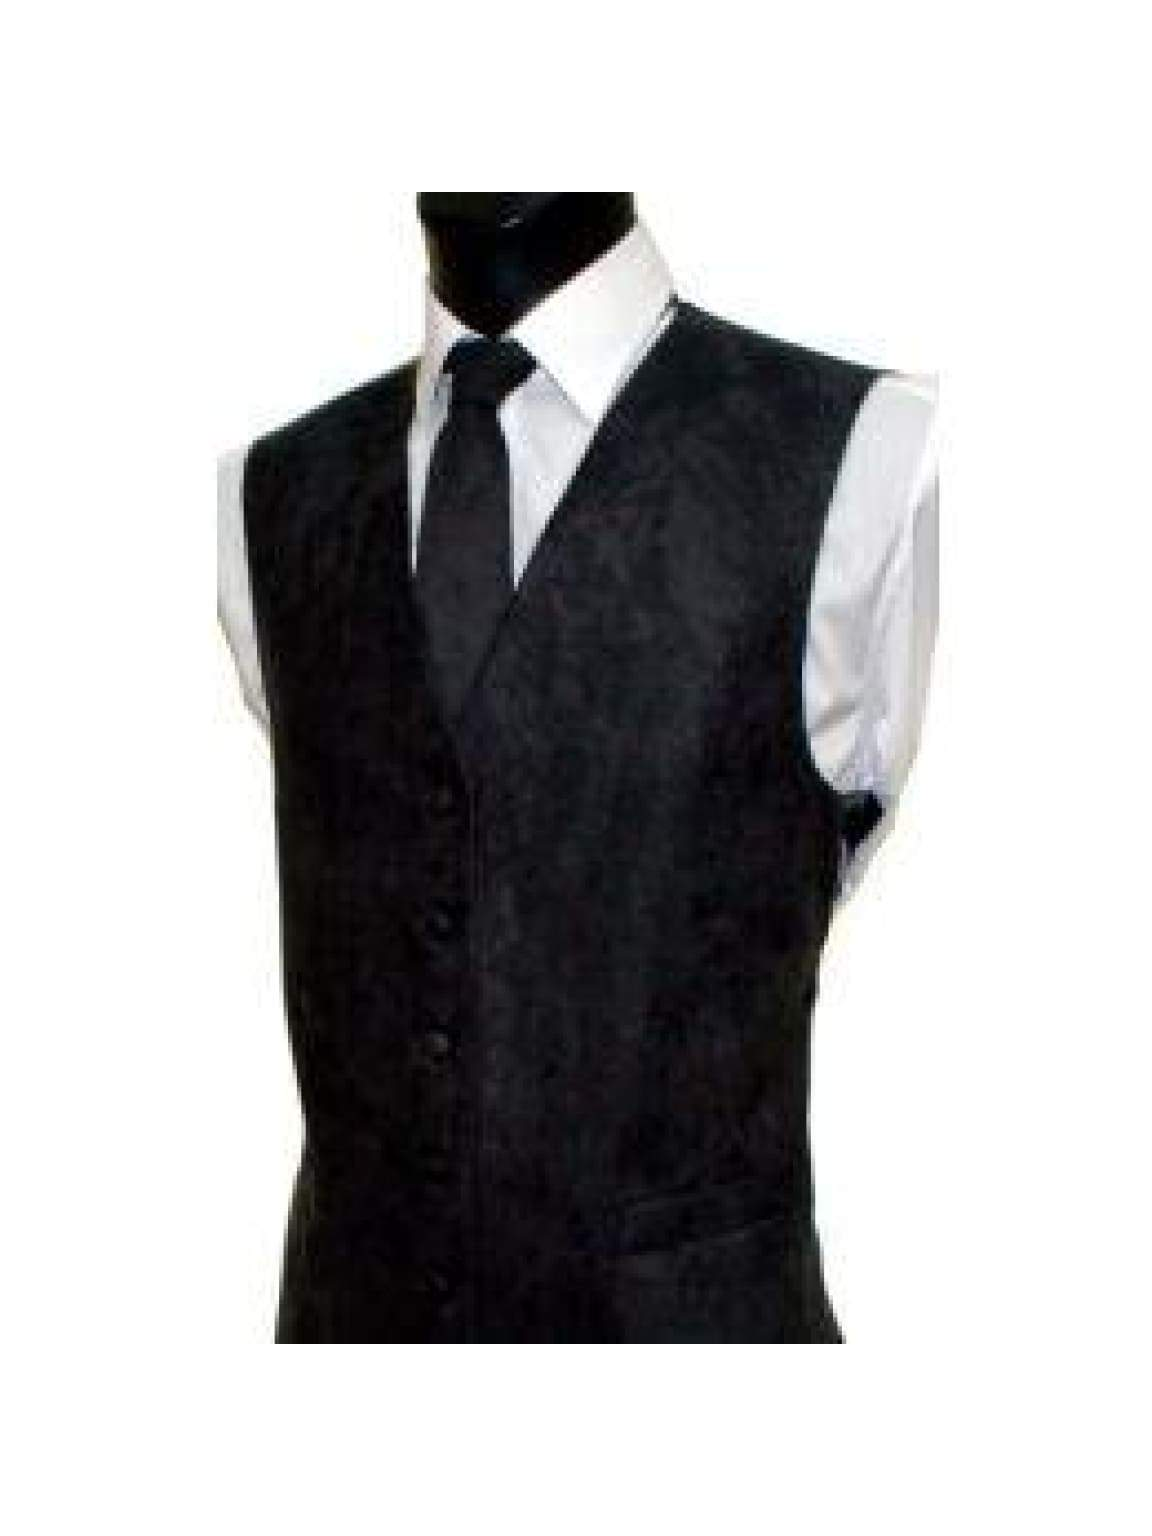 L A Smith Black Suede Look Waistcoat - Suit & Tailoring